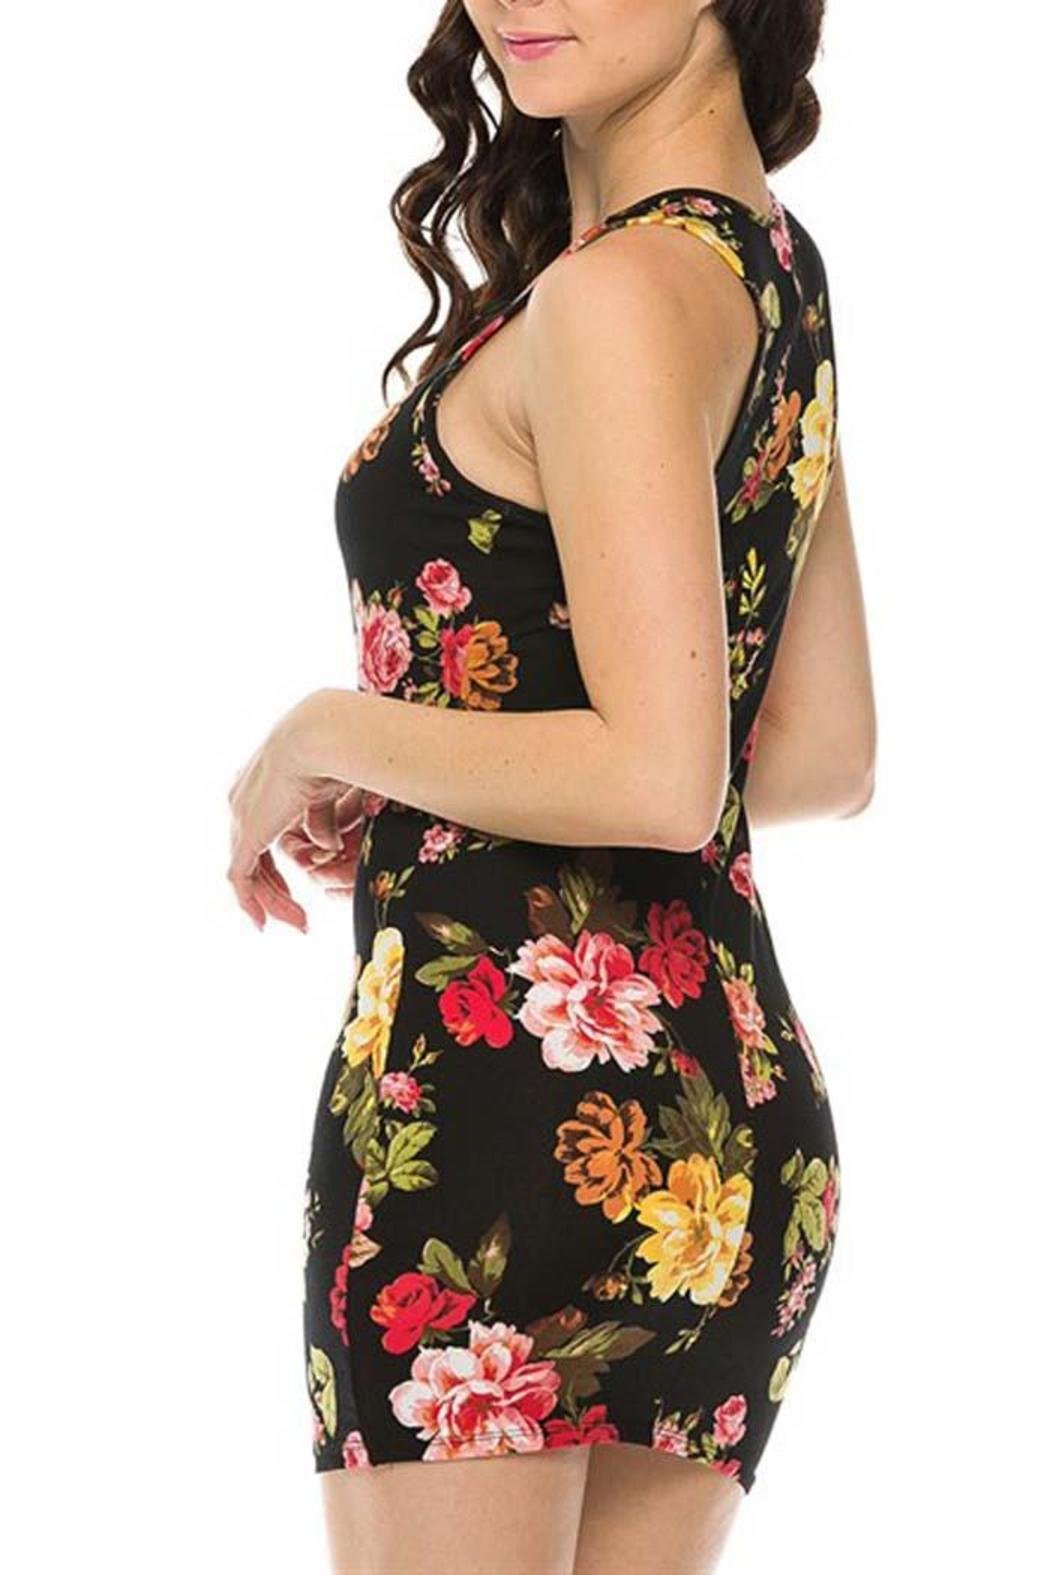 Ambiance Apparel Floral Bodycon Dress From Oregon By My